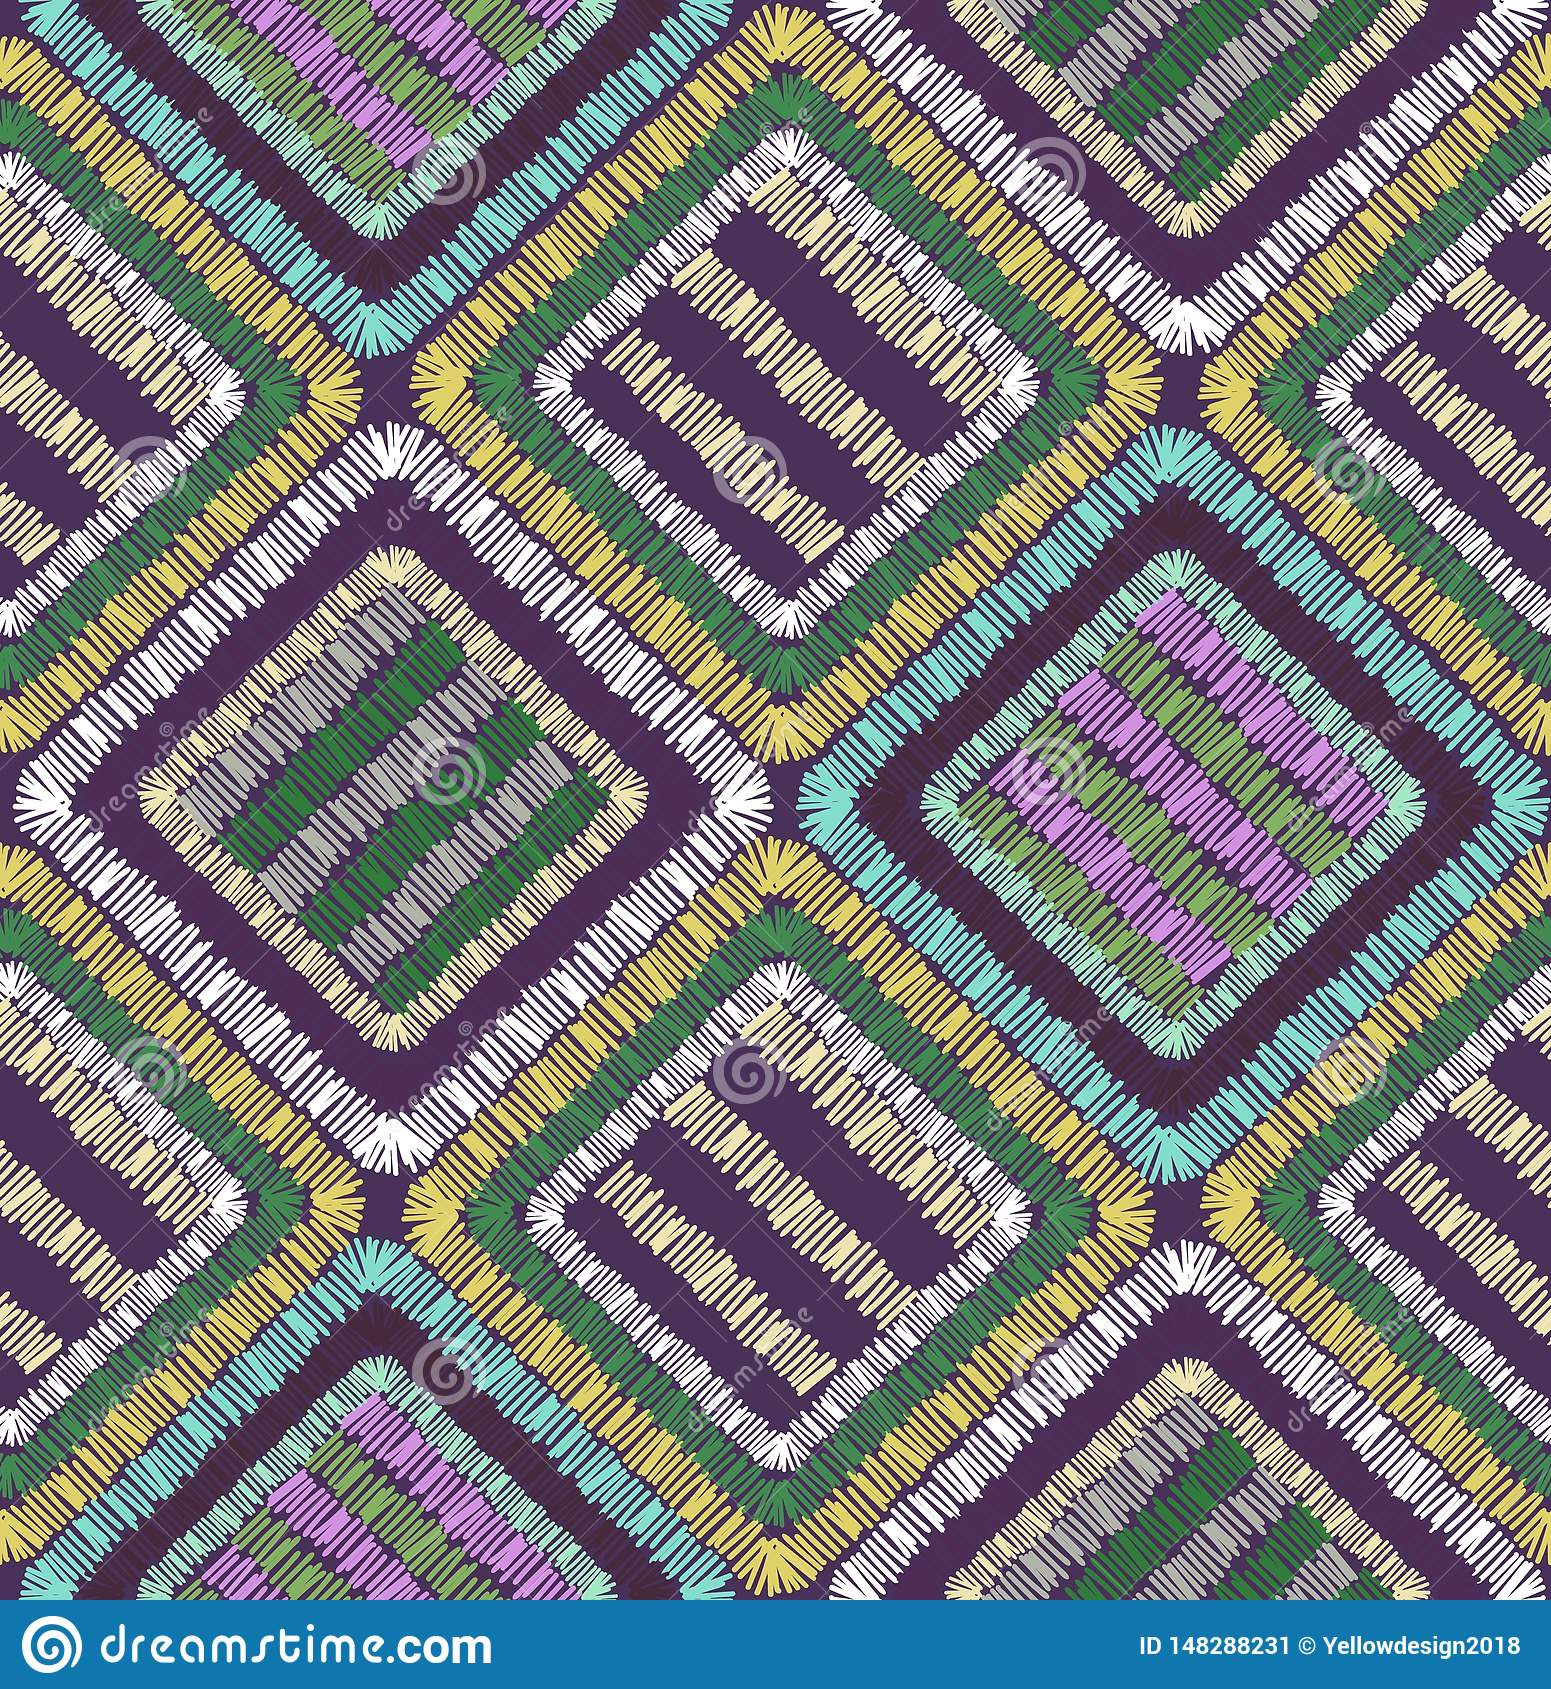 Abstract embroidery shapes geometric seamless pattern illustration